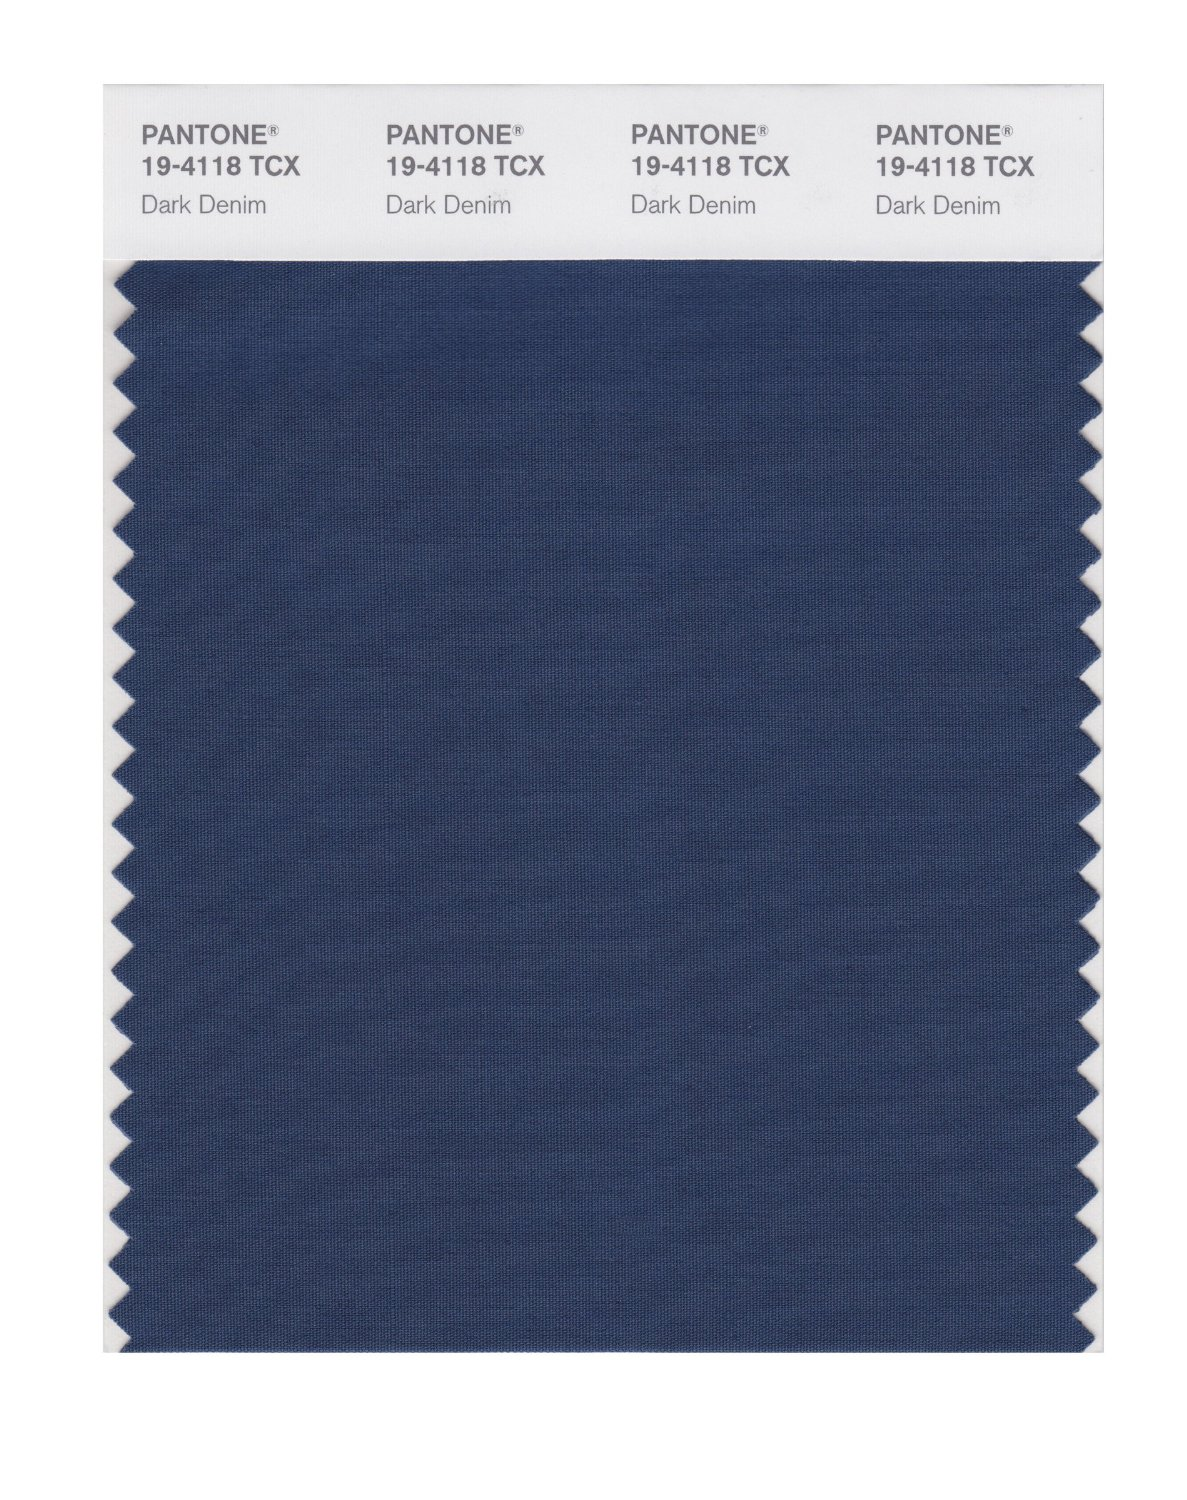 Pantone Smart Swatch 19-4118 Dark Denim